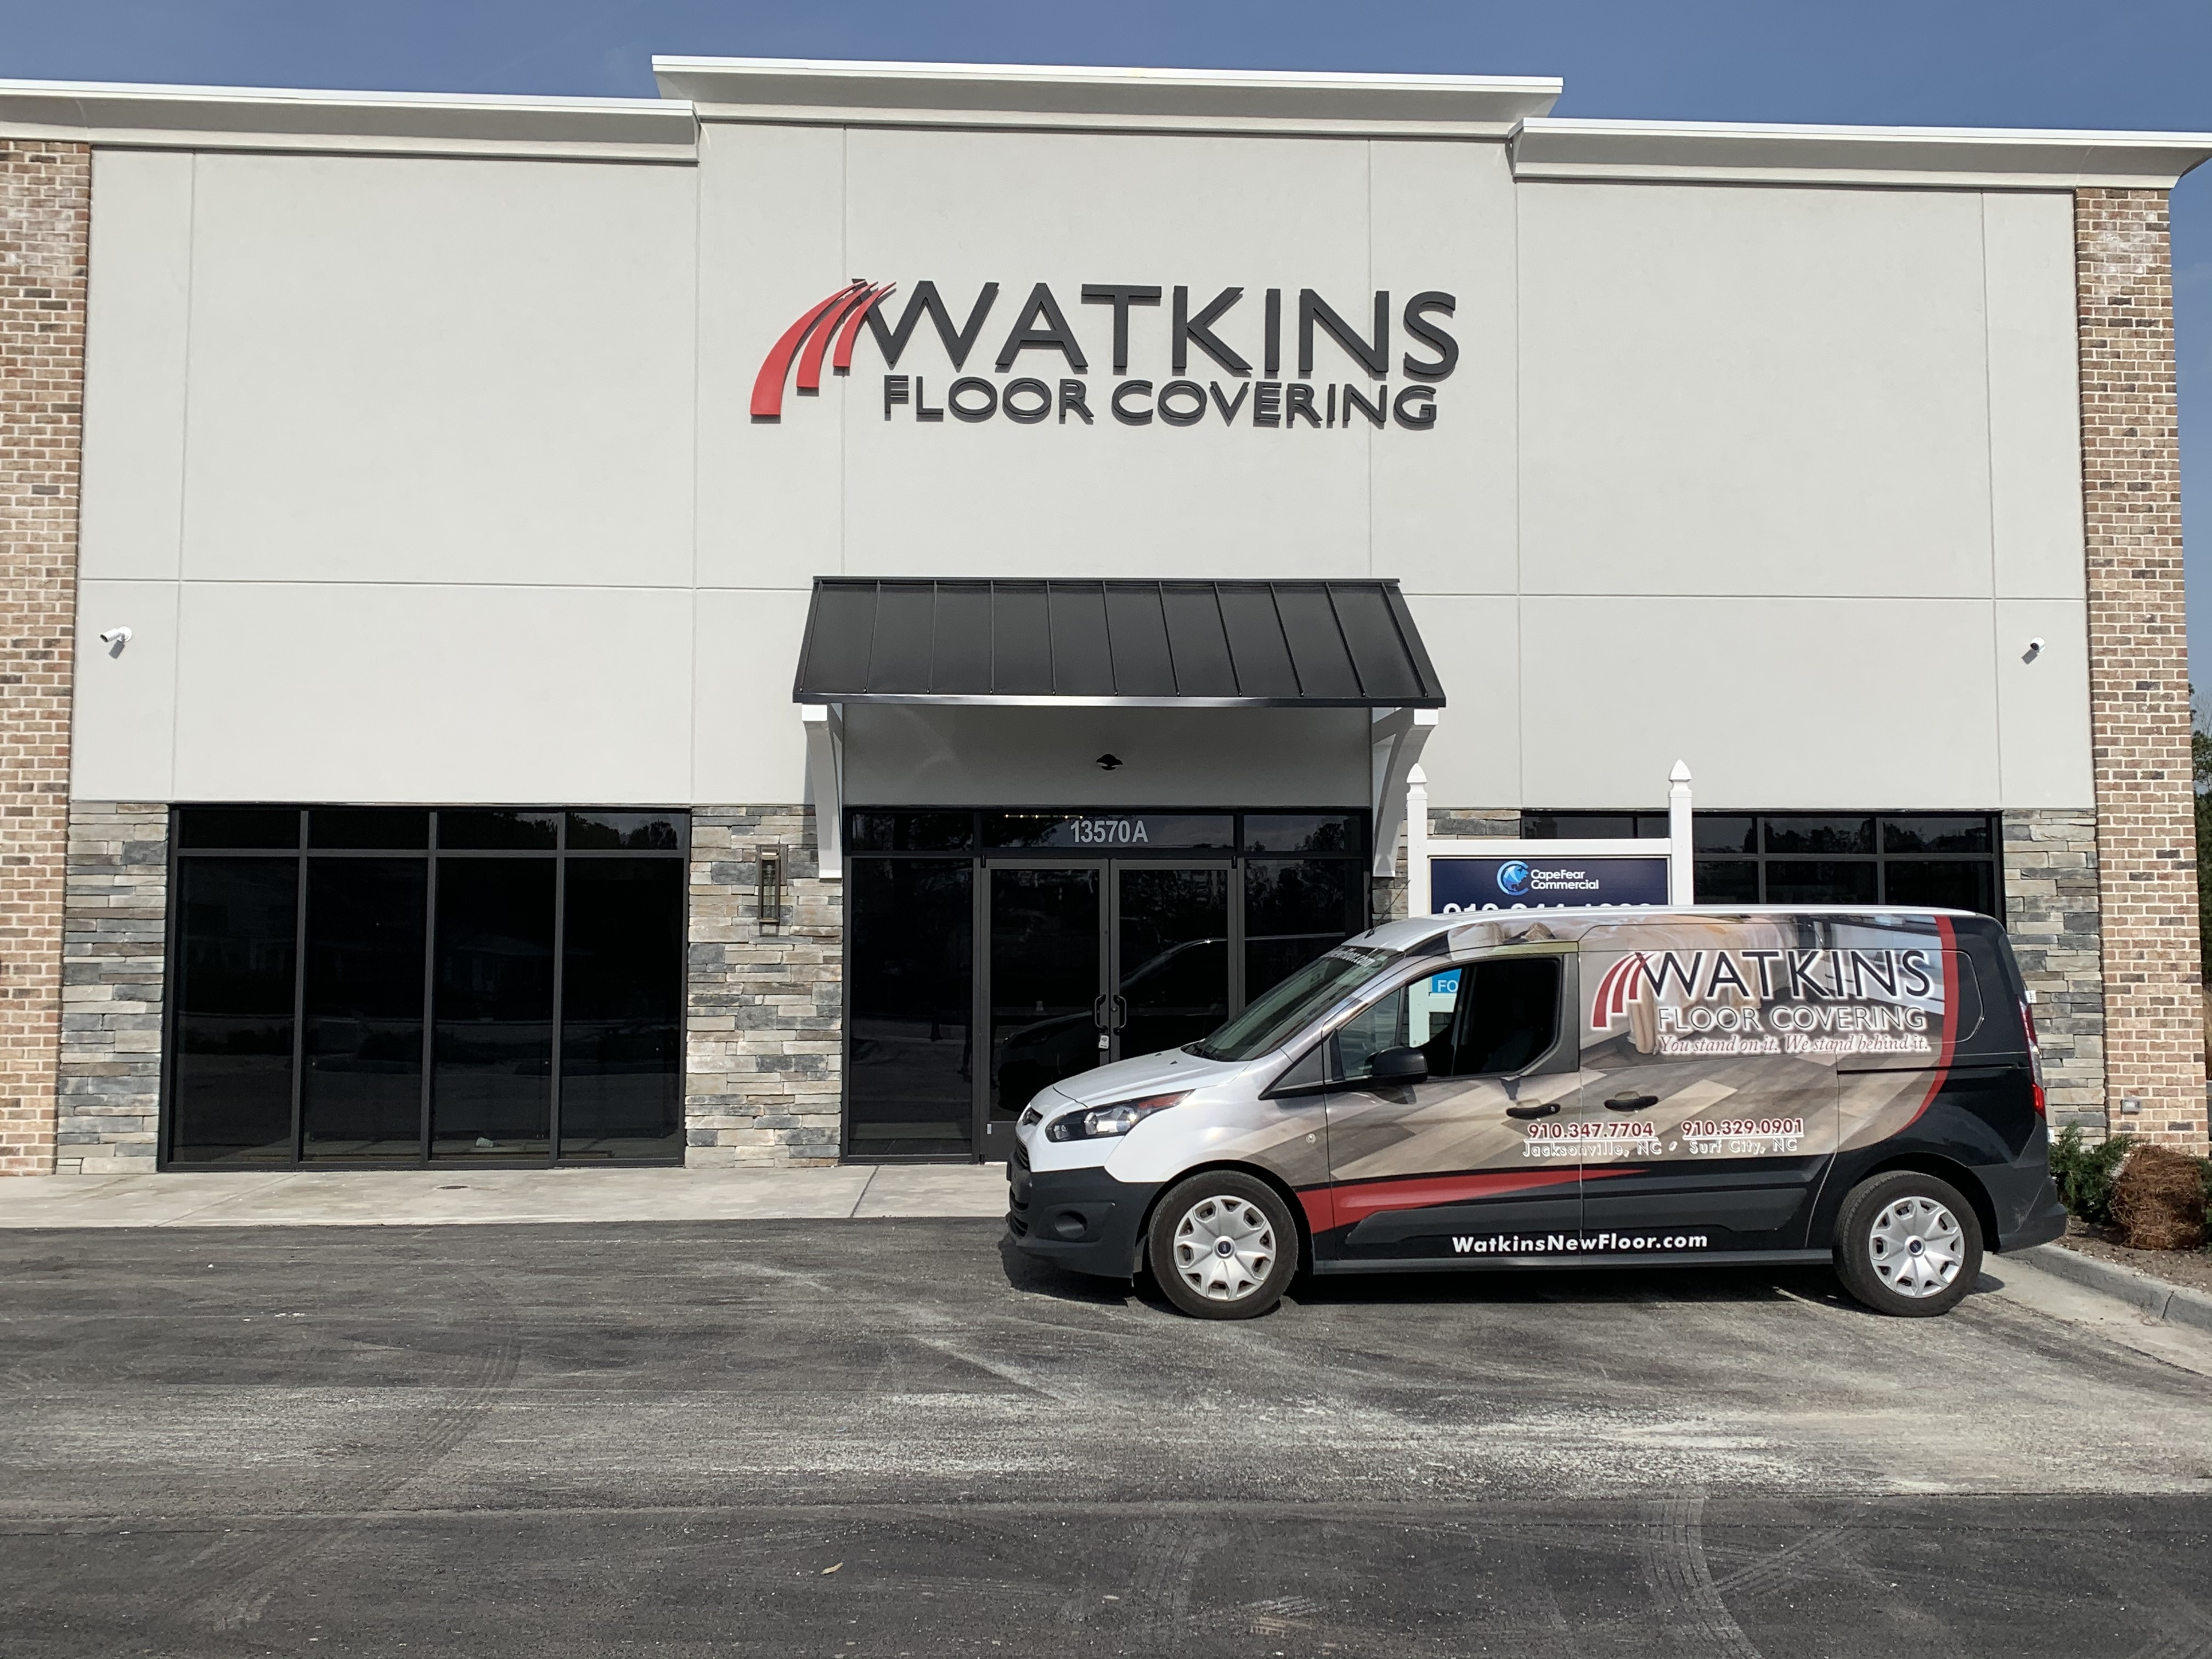 Watkins Floor Covering - 13570 NC-50 Suite A Surf City, NC 28445